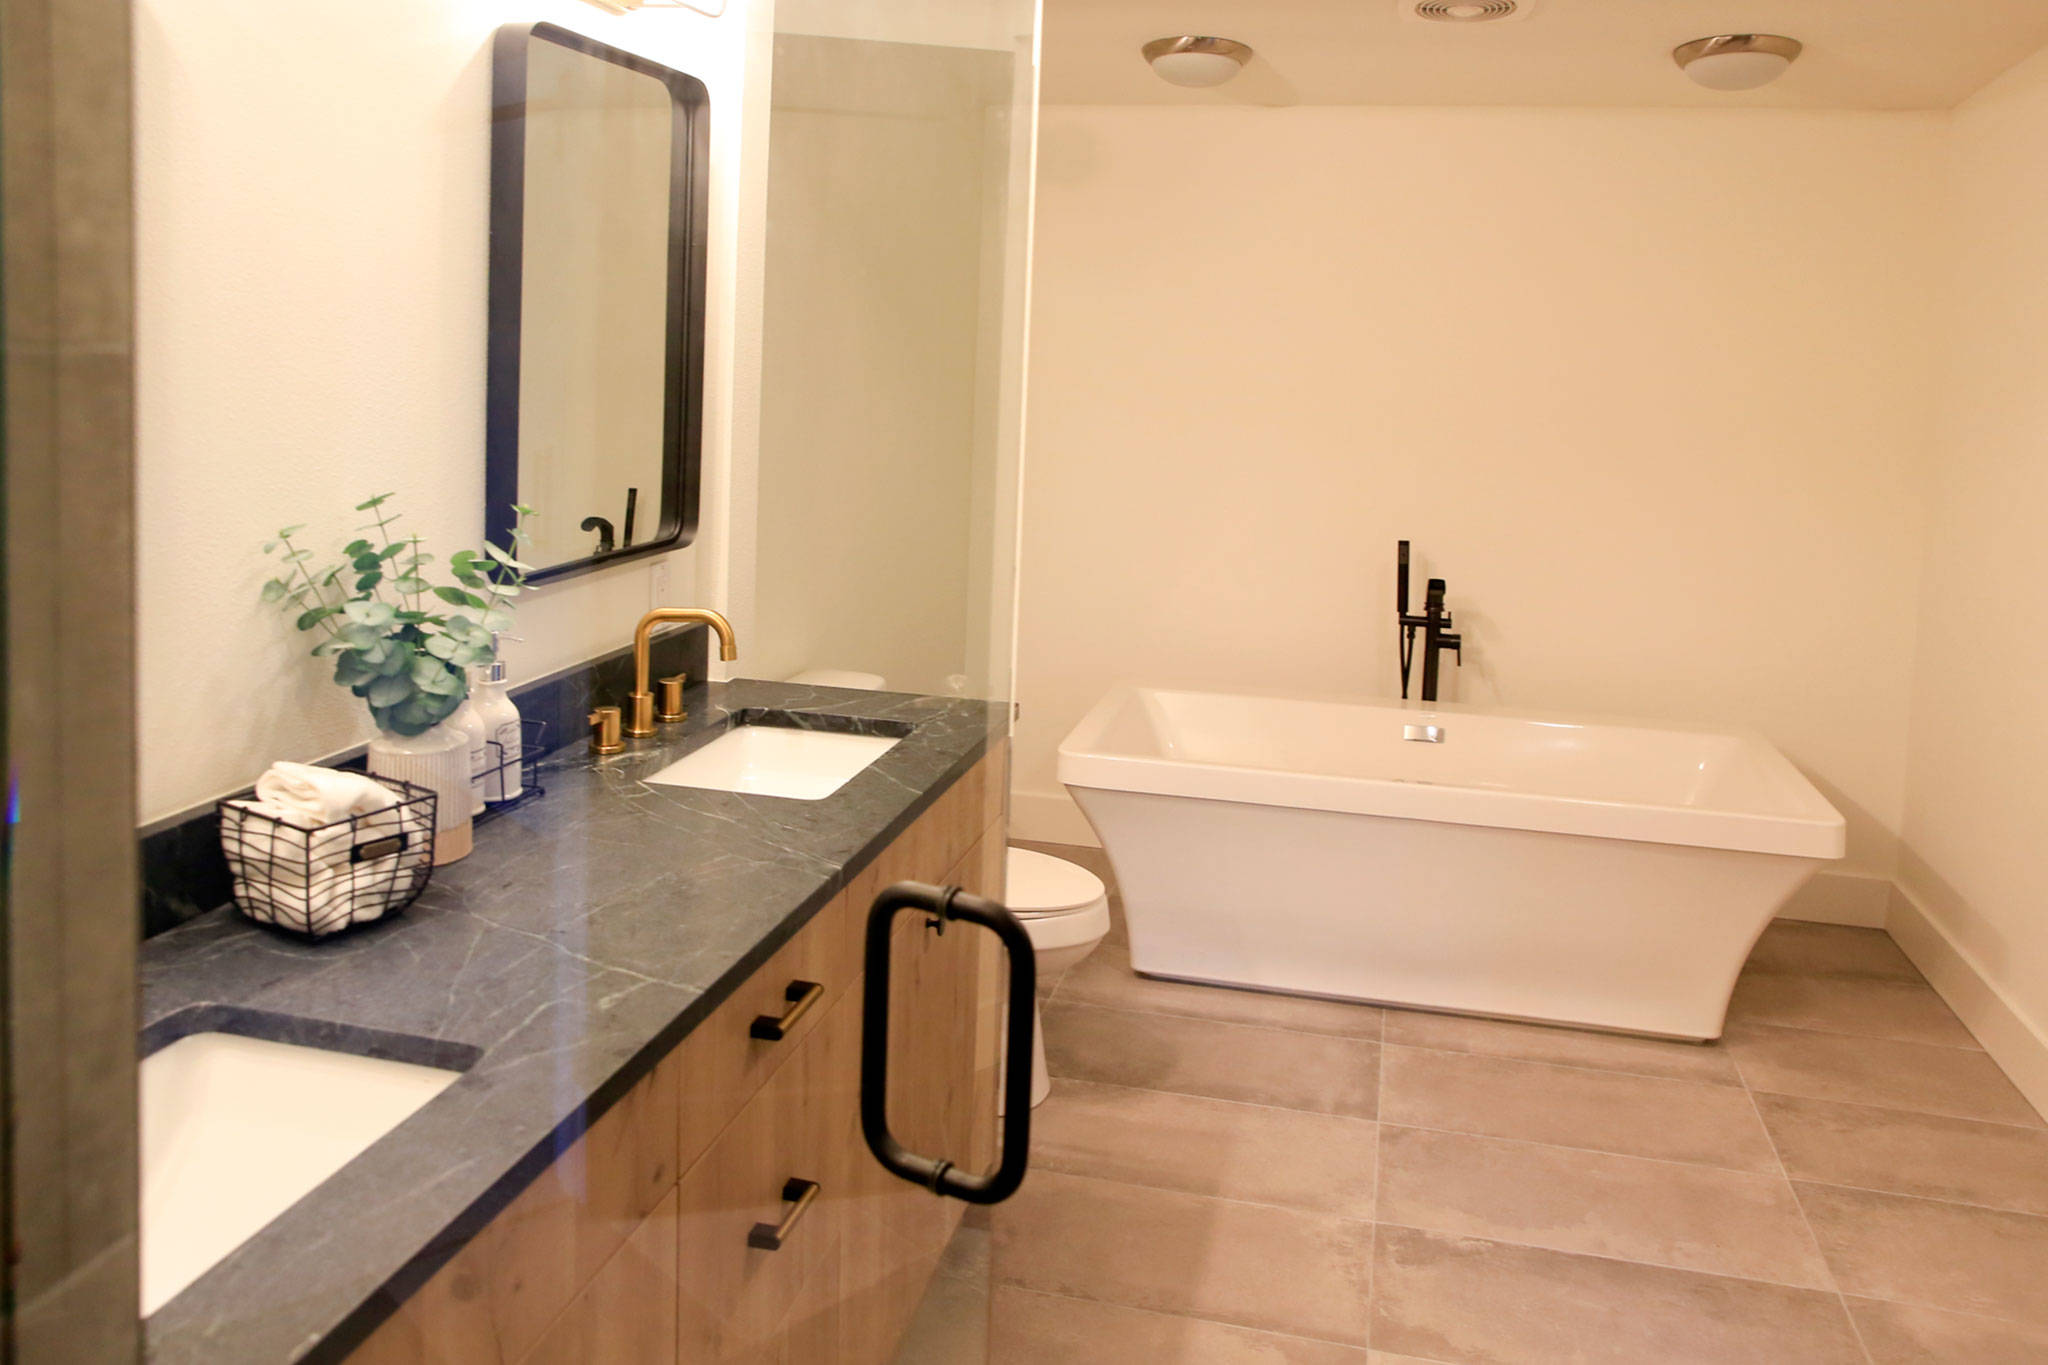 The master bathroom at a listing in Mukilteo. (Kevin Clark / The Herald)